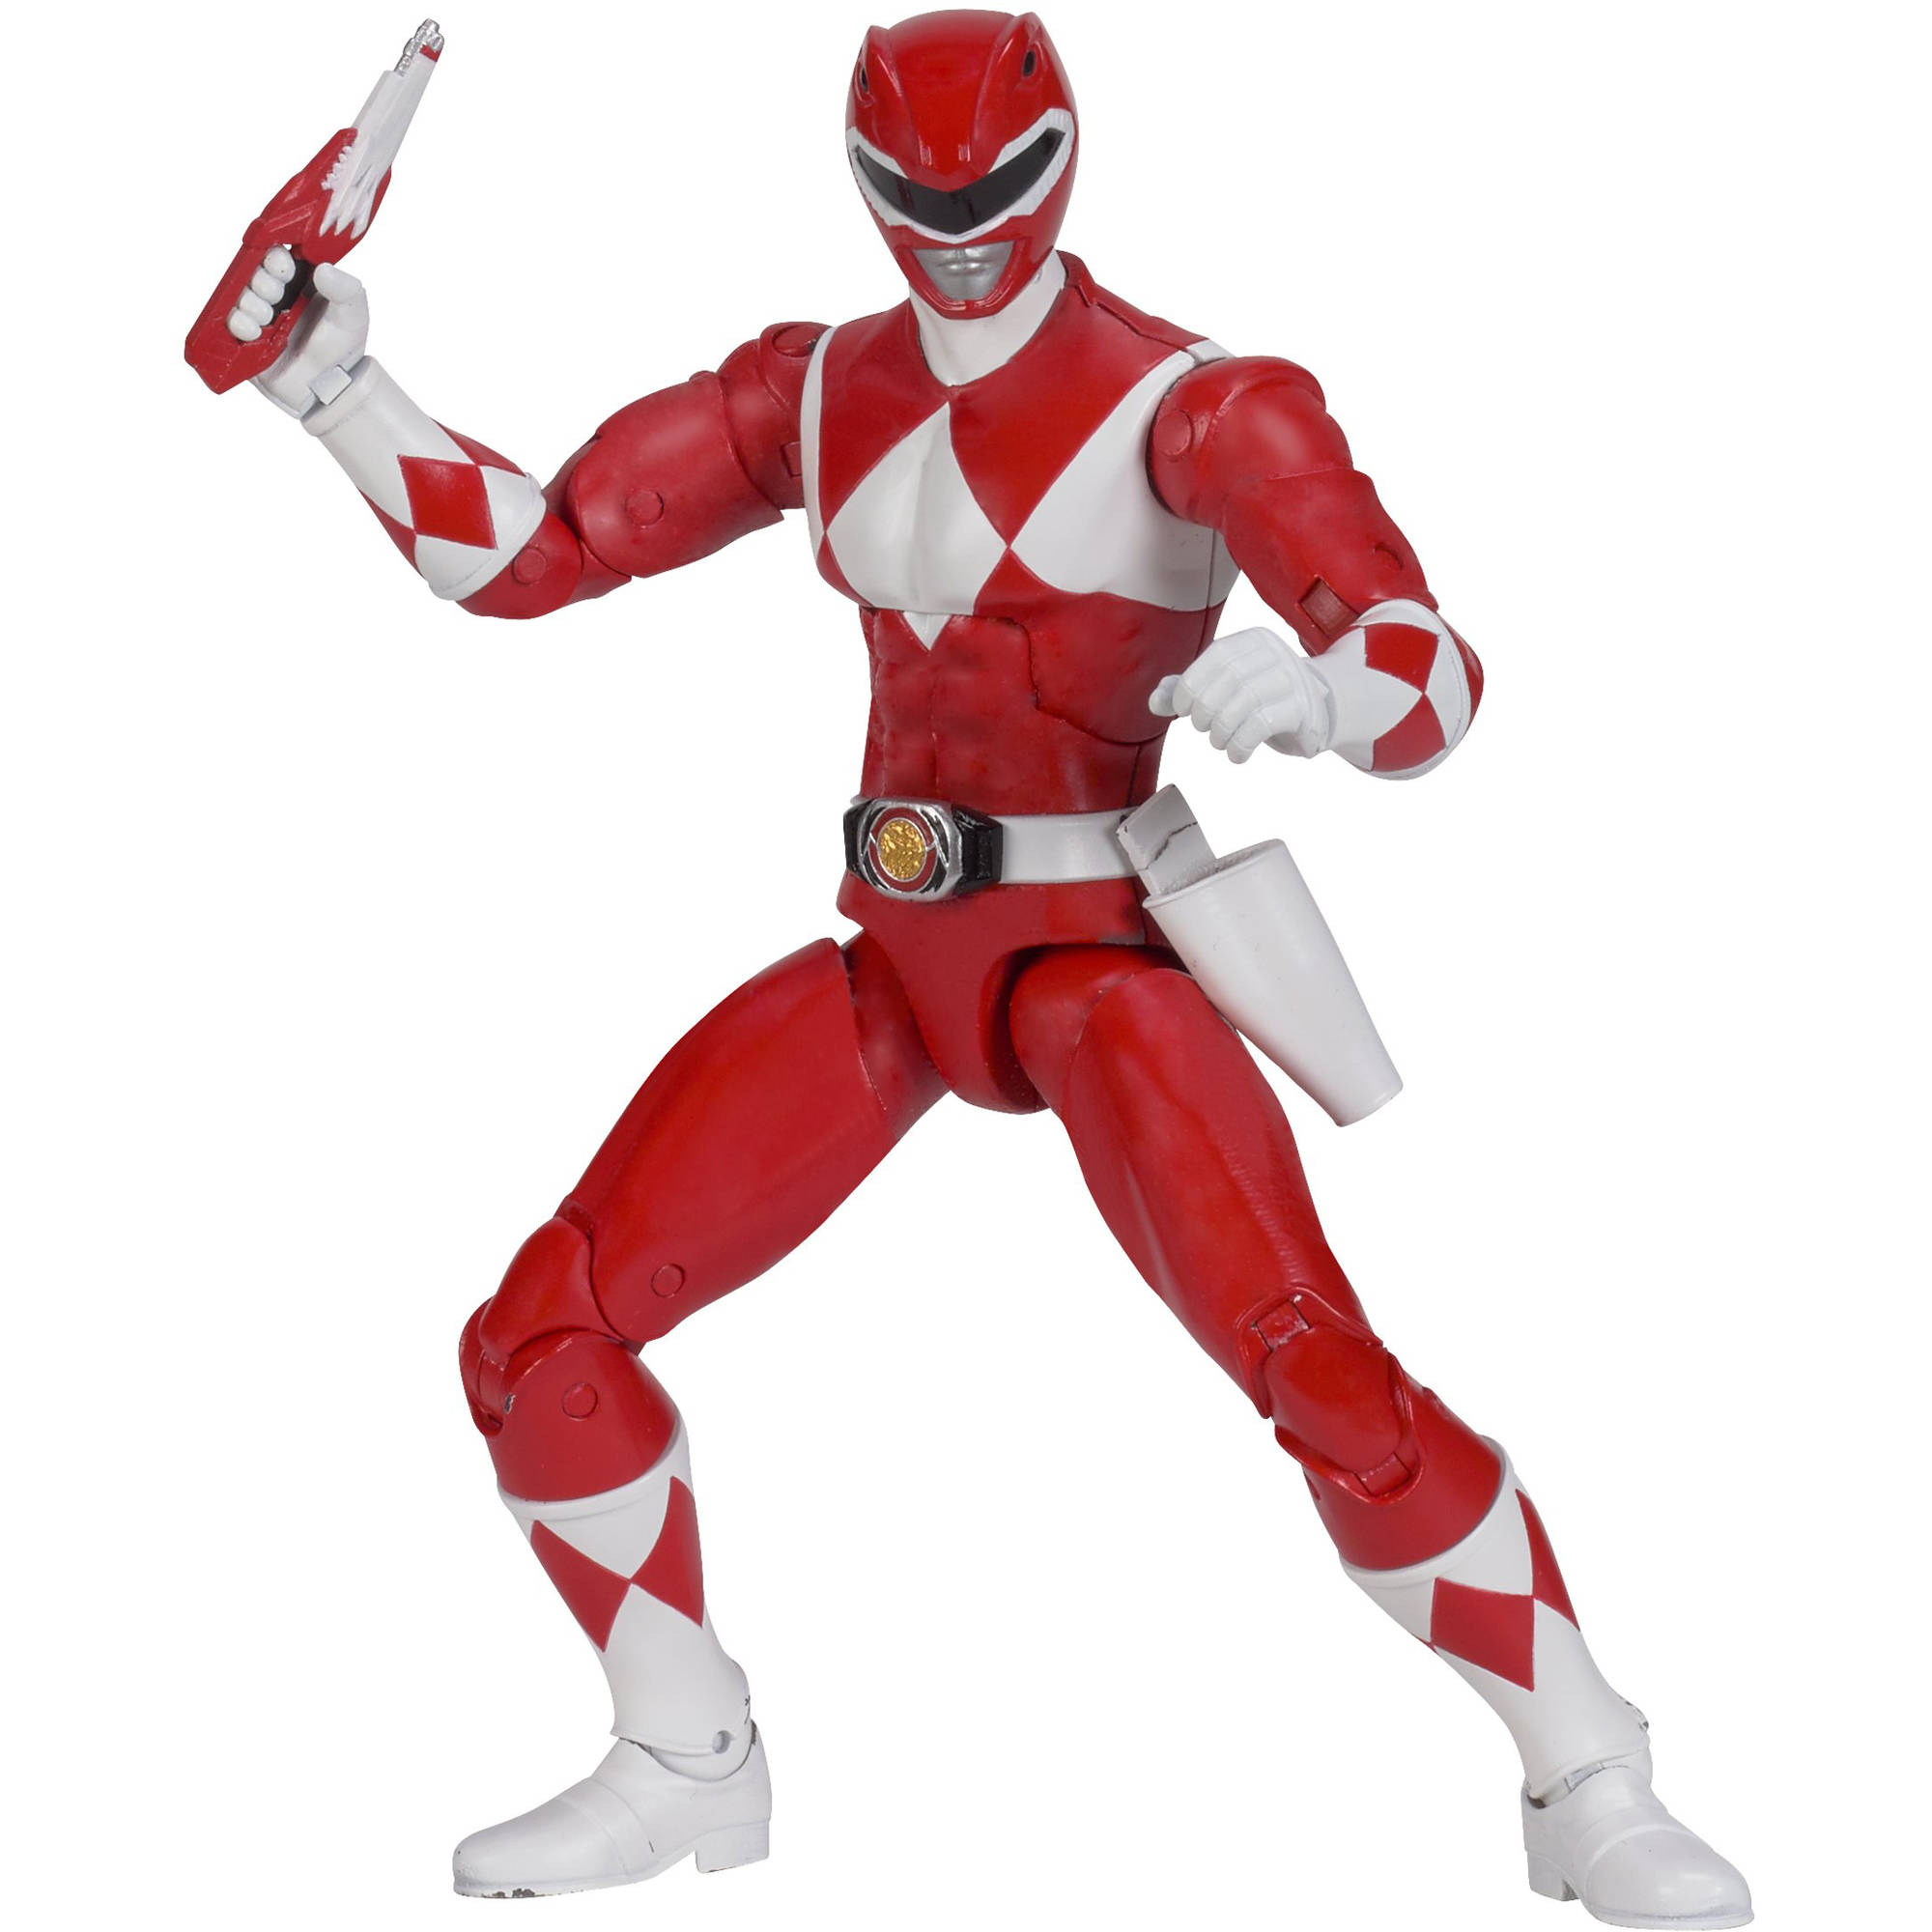 Power Rangers Legacy Mighty Morphin Red Ranger